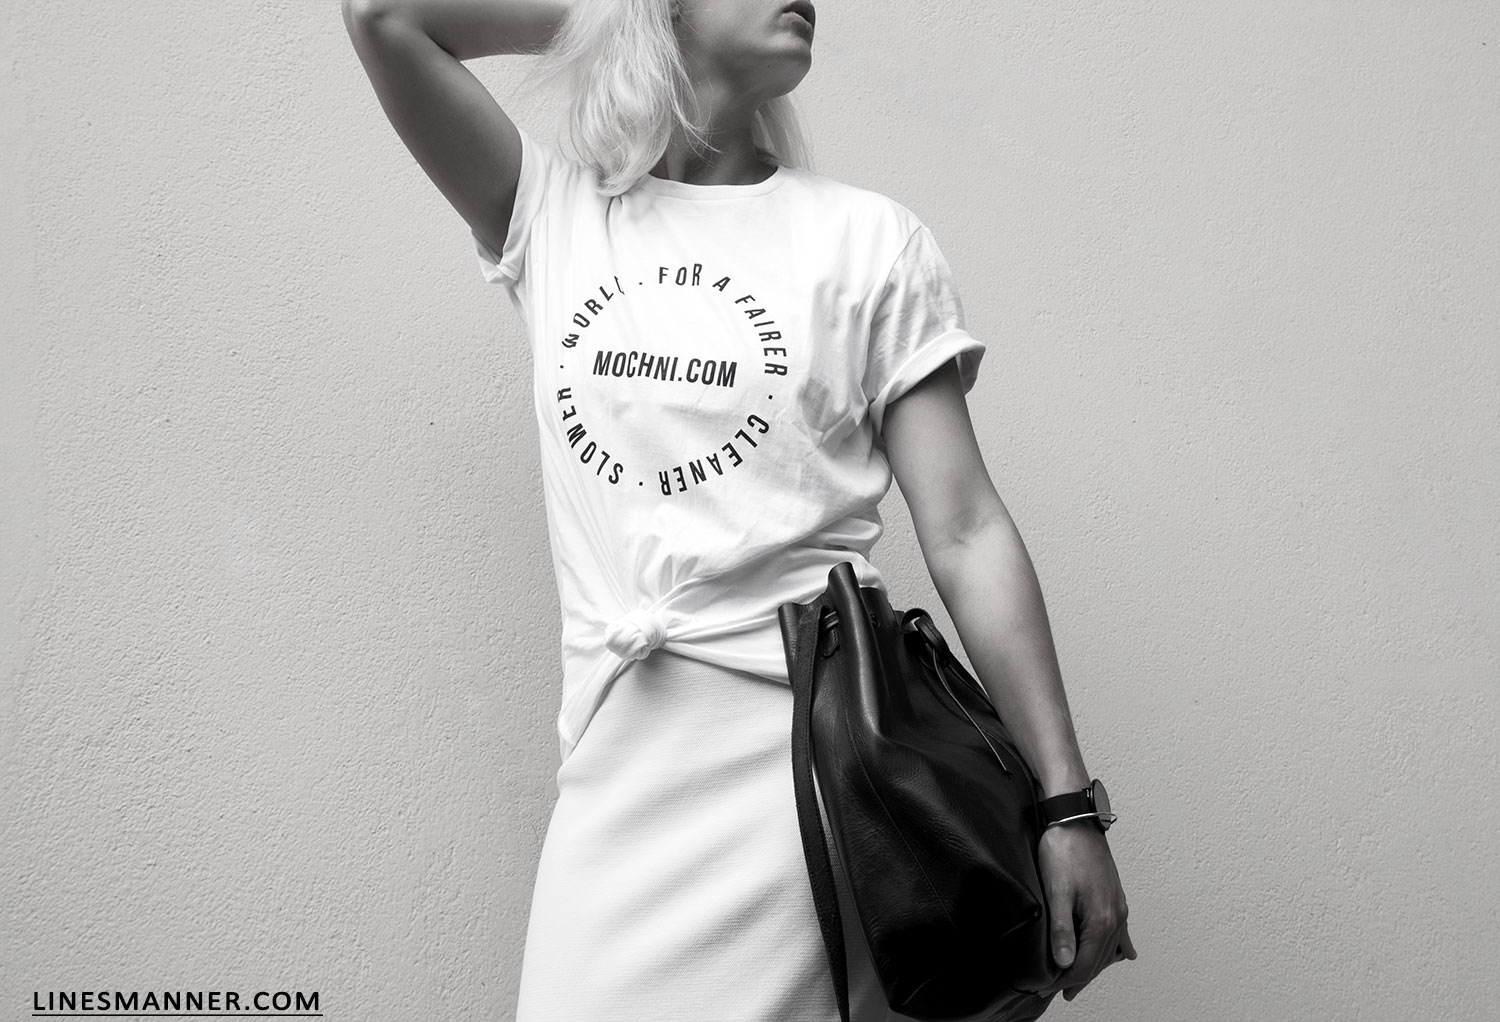 Lines-Manner-Mochni-Slow_Fashion_Plateform-Sustainable-Eco_Fashion-Awareness-Tee-Fairer-World-Conscious-Essentials-Minimal-Monochrome-Quality-Organic-8